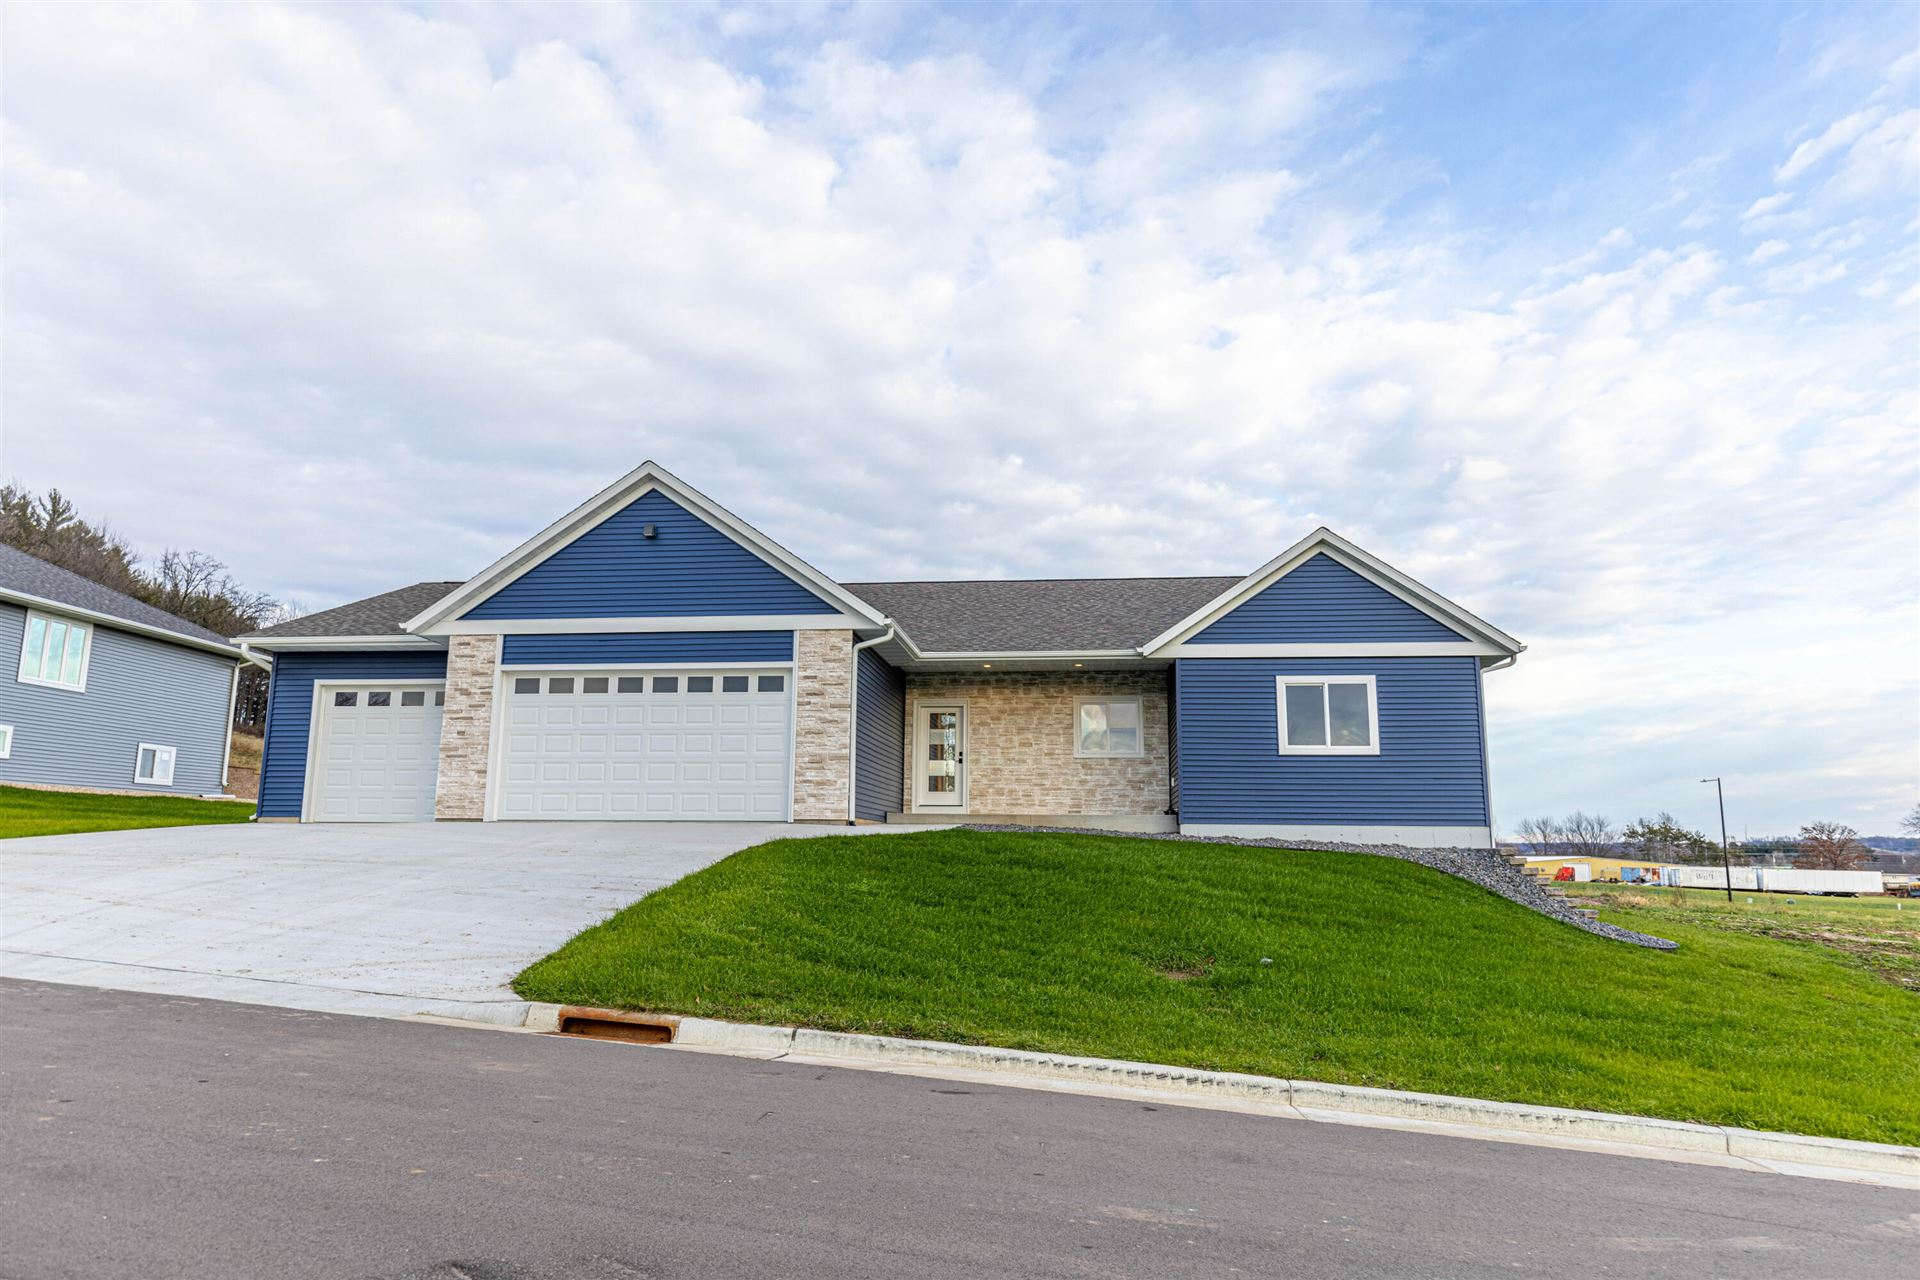 36156 Aspen Ct, Independence, WI 54747 - MLS#: 1752441